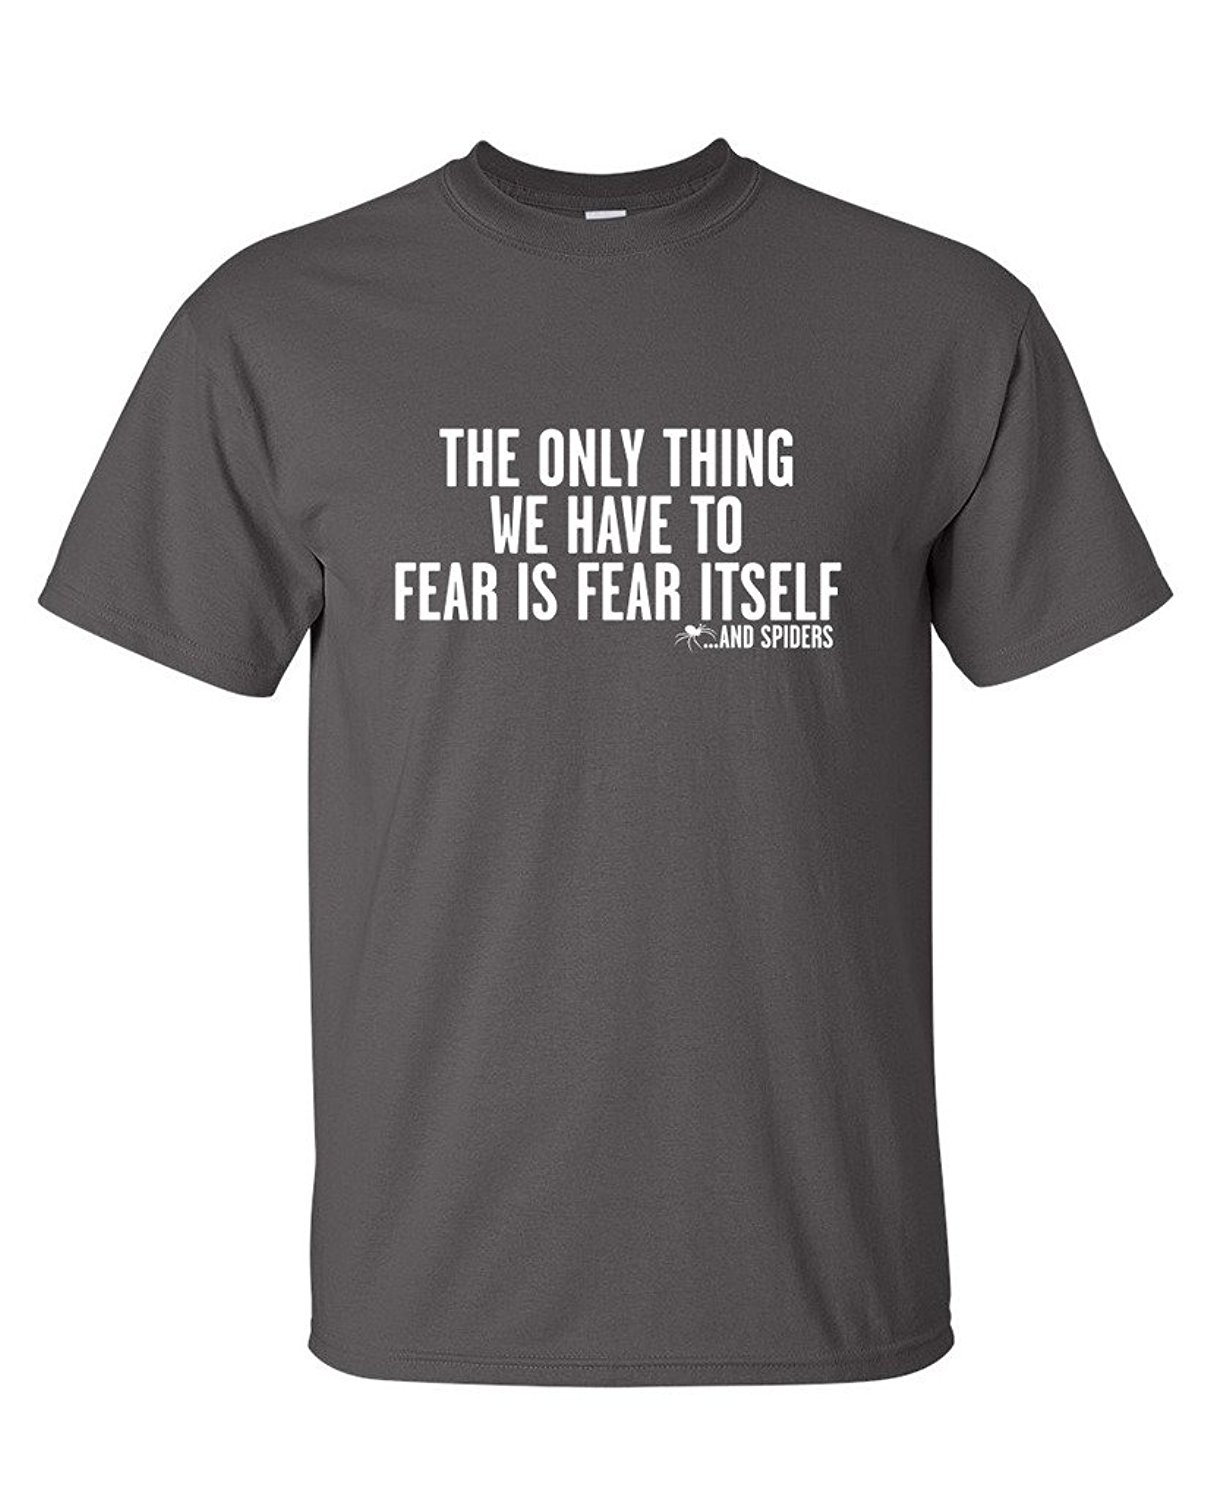 Tops & Tees Men's Clothing The Only Thing We Have To Fear Is Fear Itself...and Spiders T Shirt Products Are Sold Without Limitations